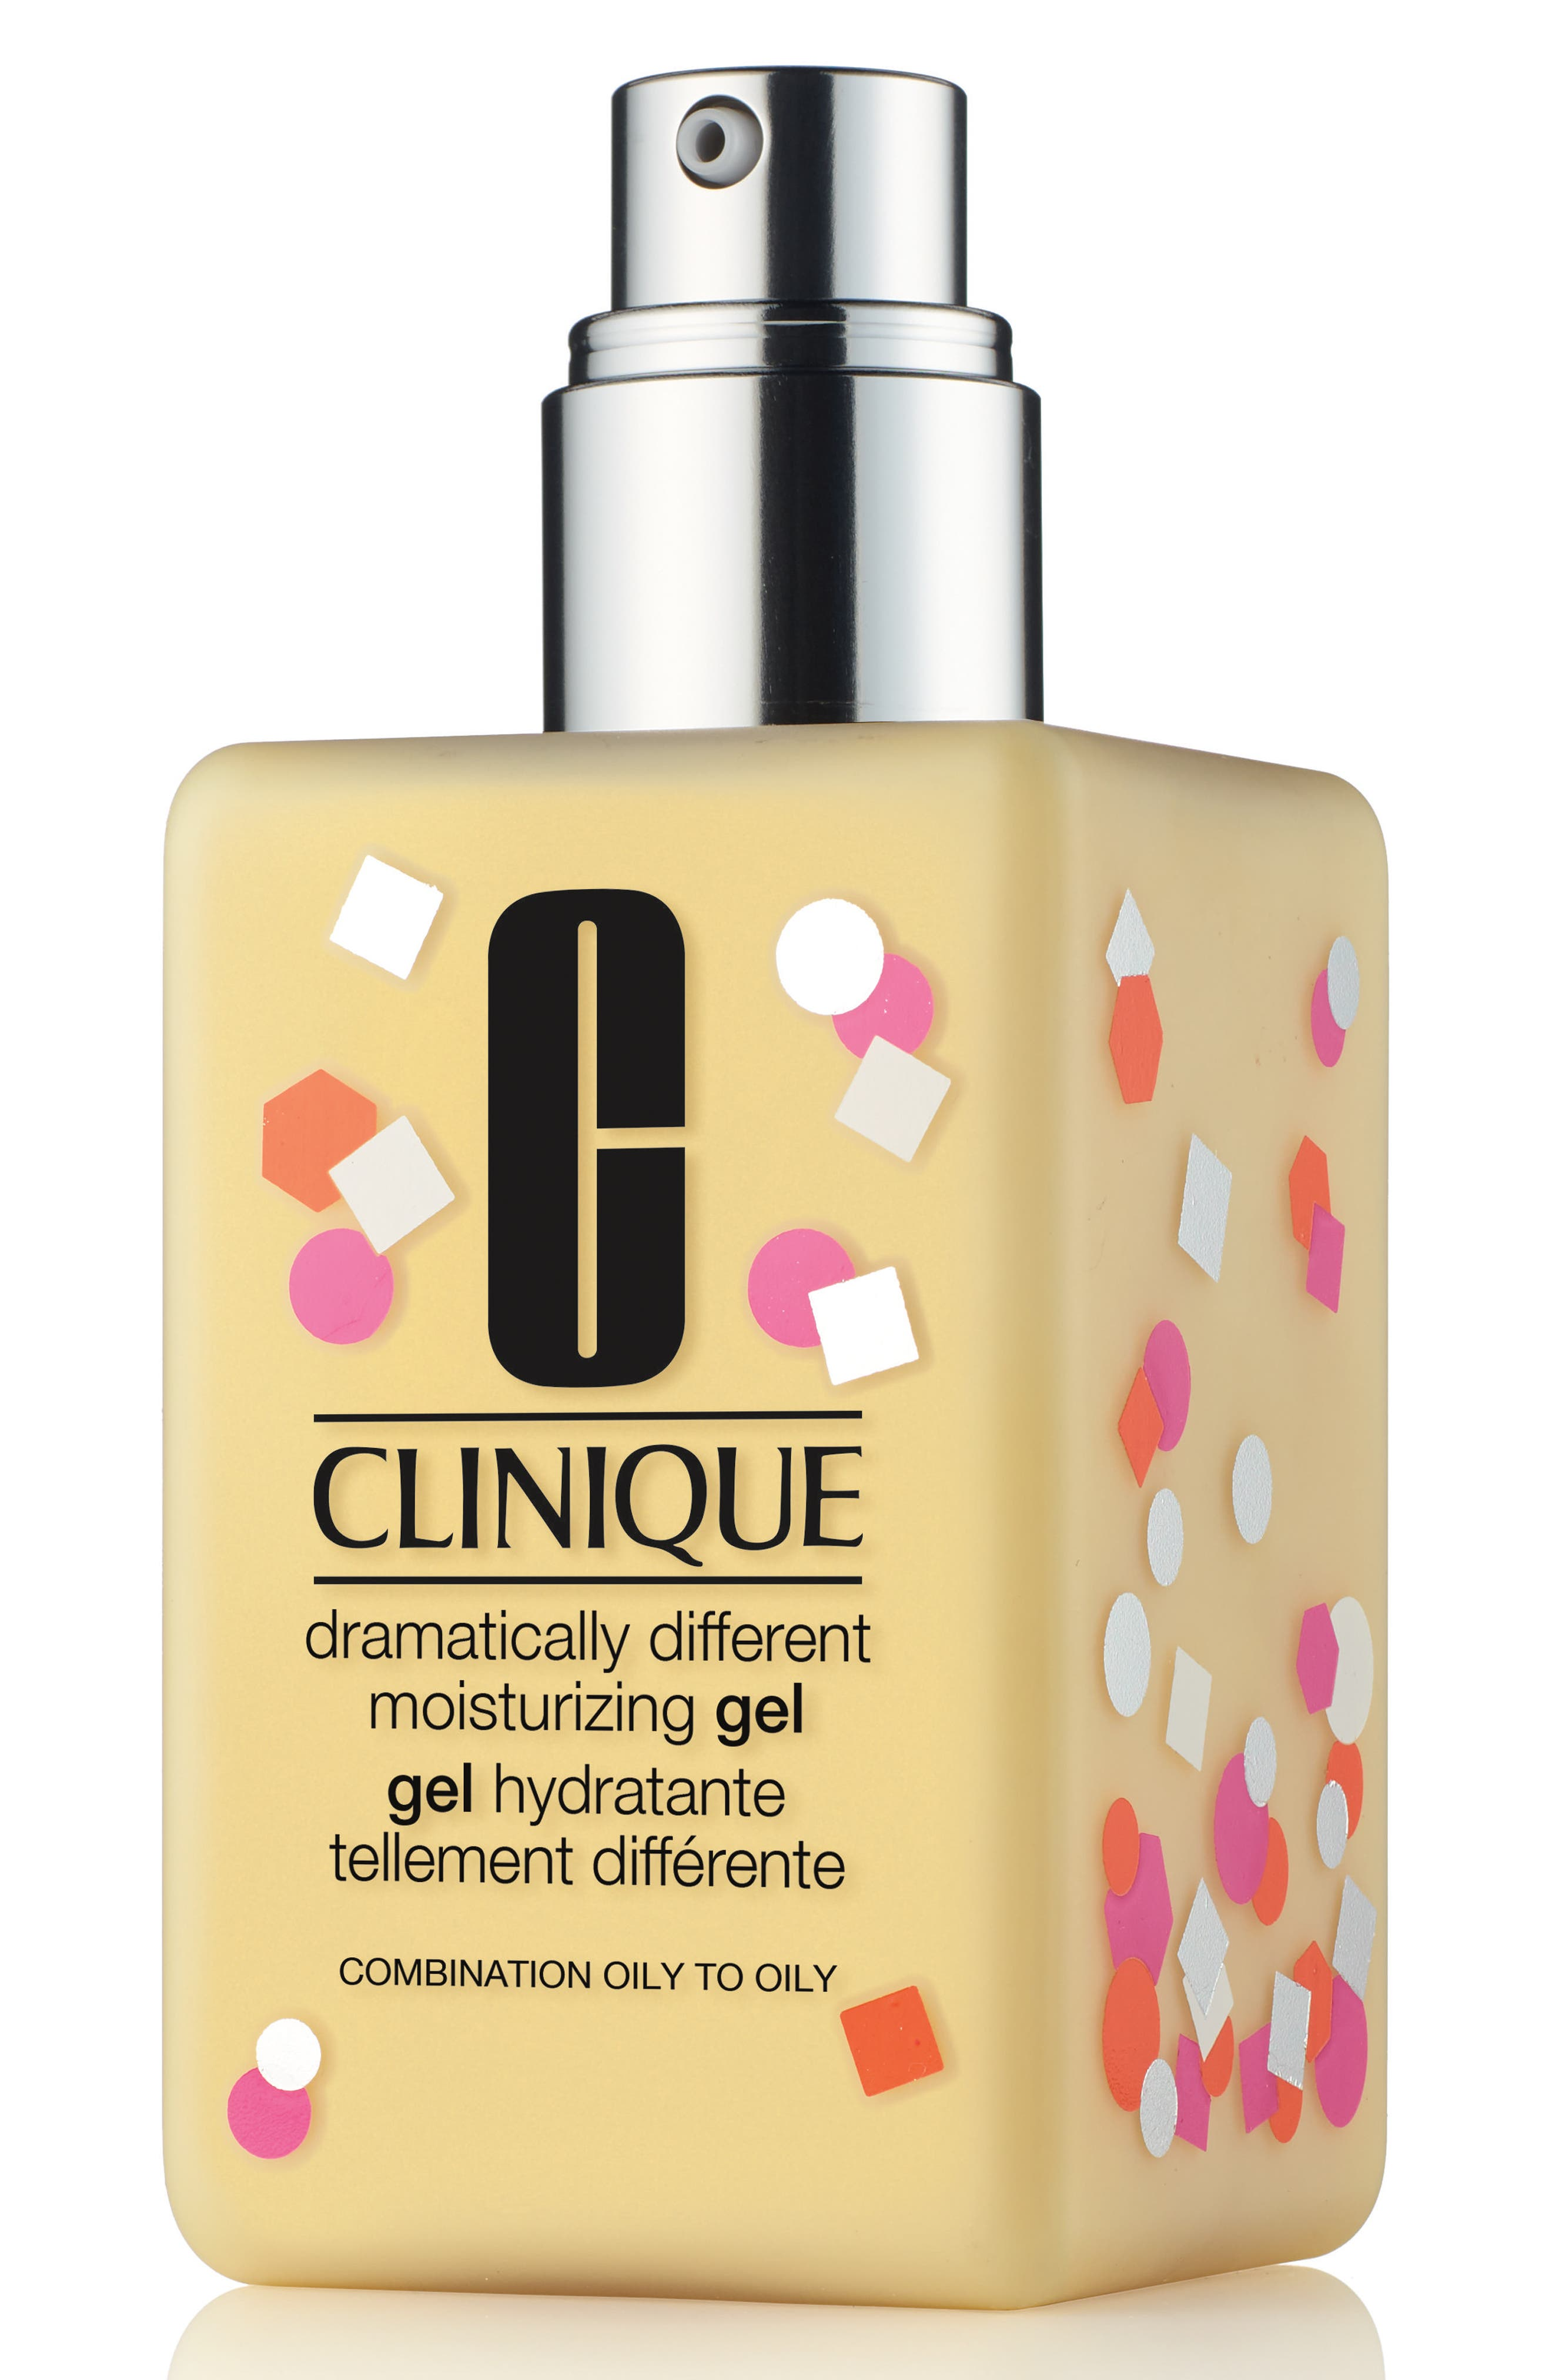 Clinique Jumbo Dramatically Different Moisturizing Gel with Pump (Limited Edition)